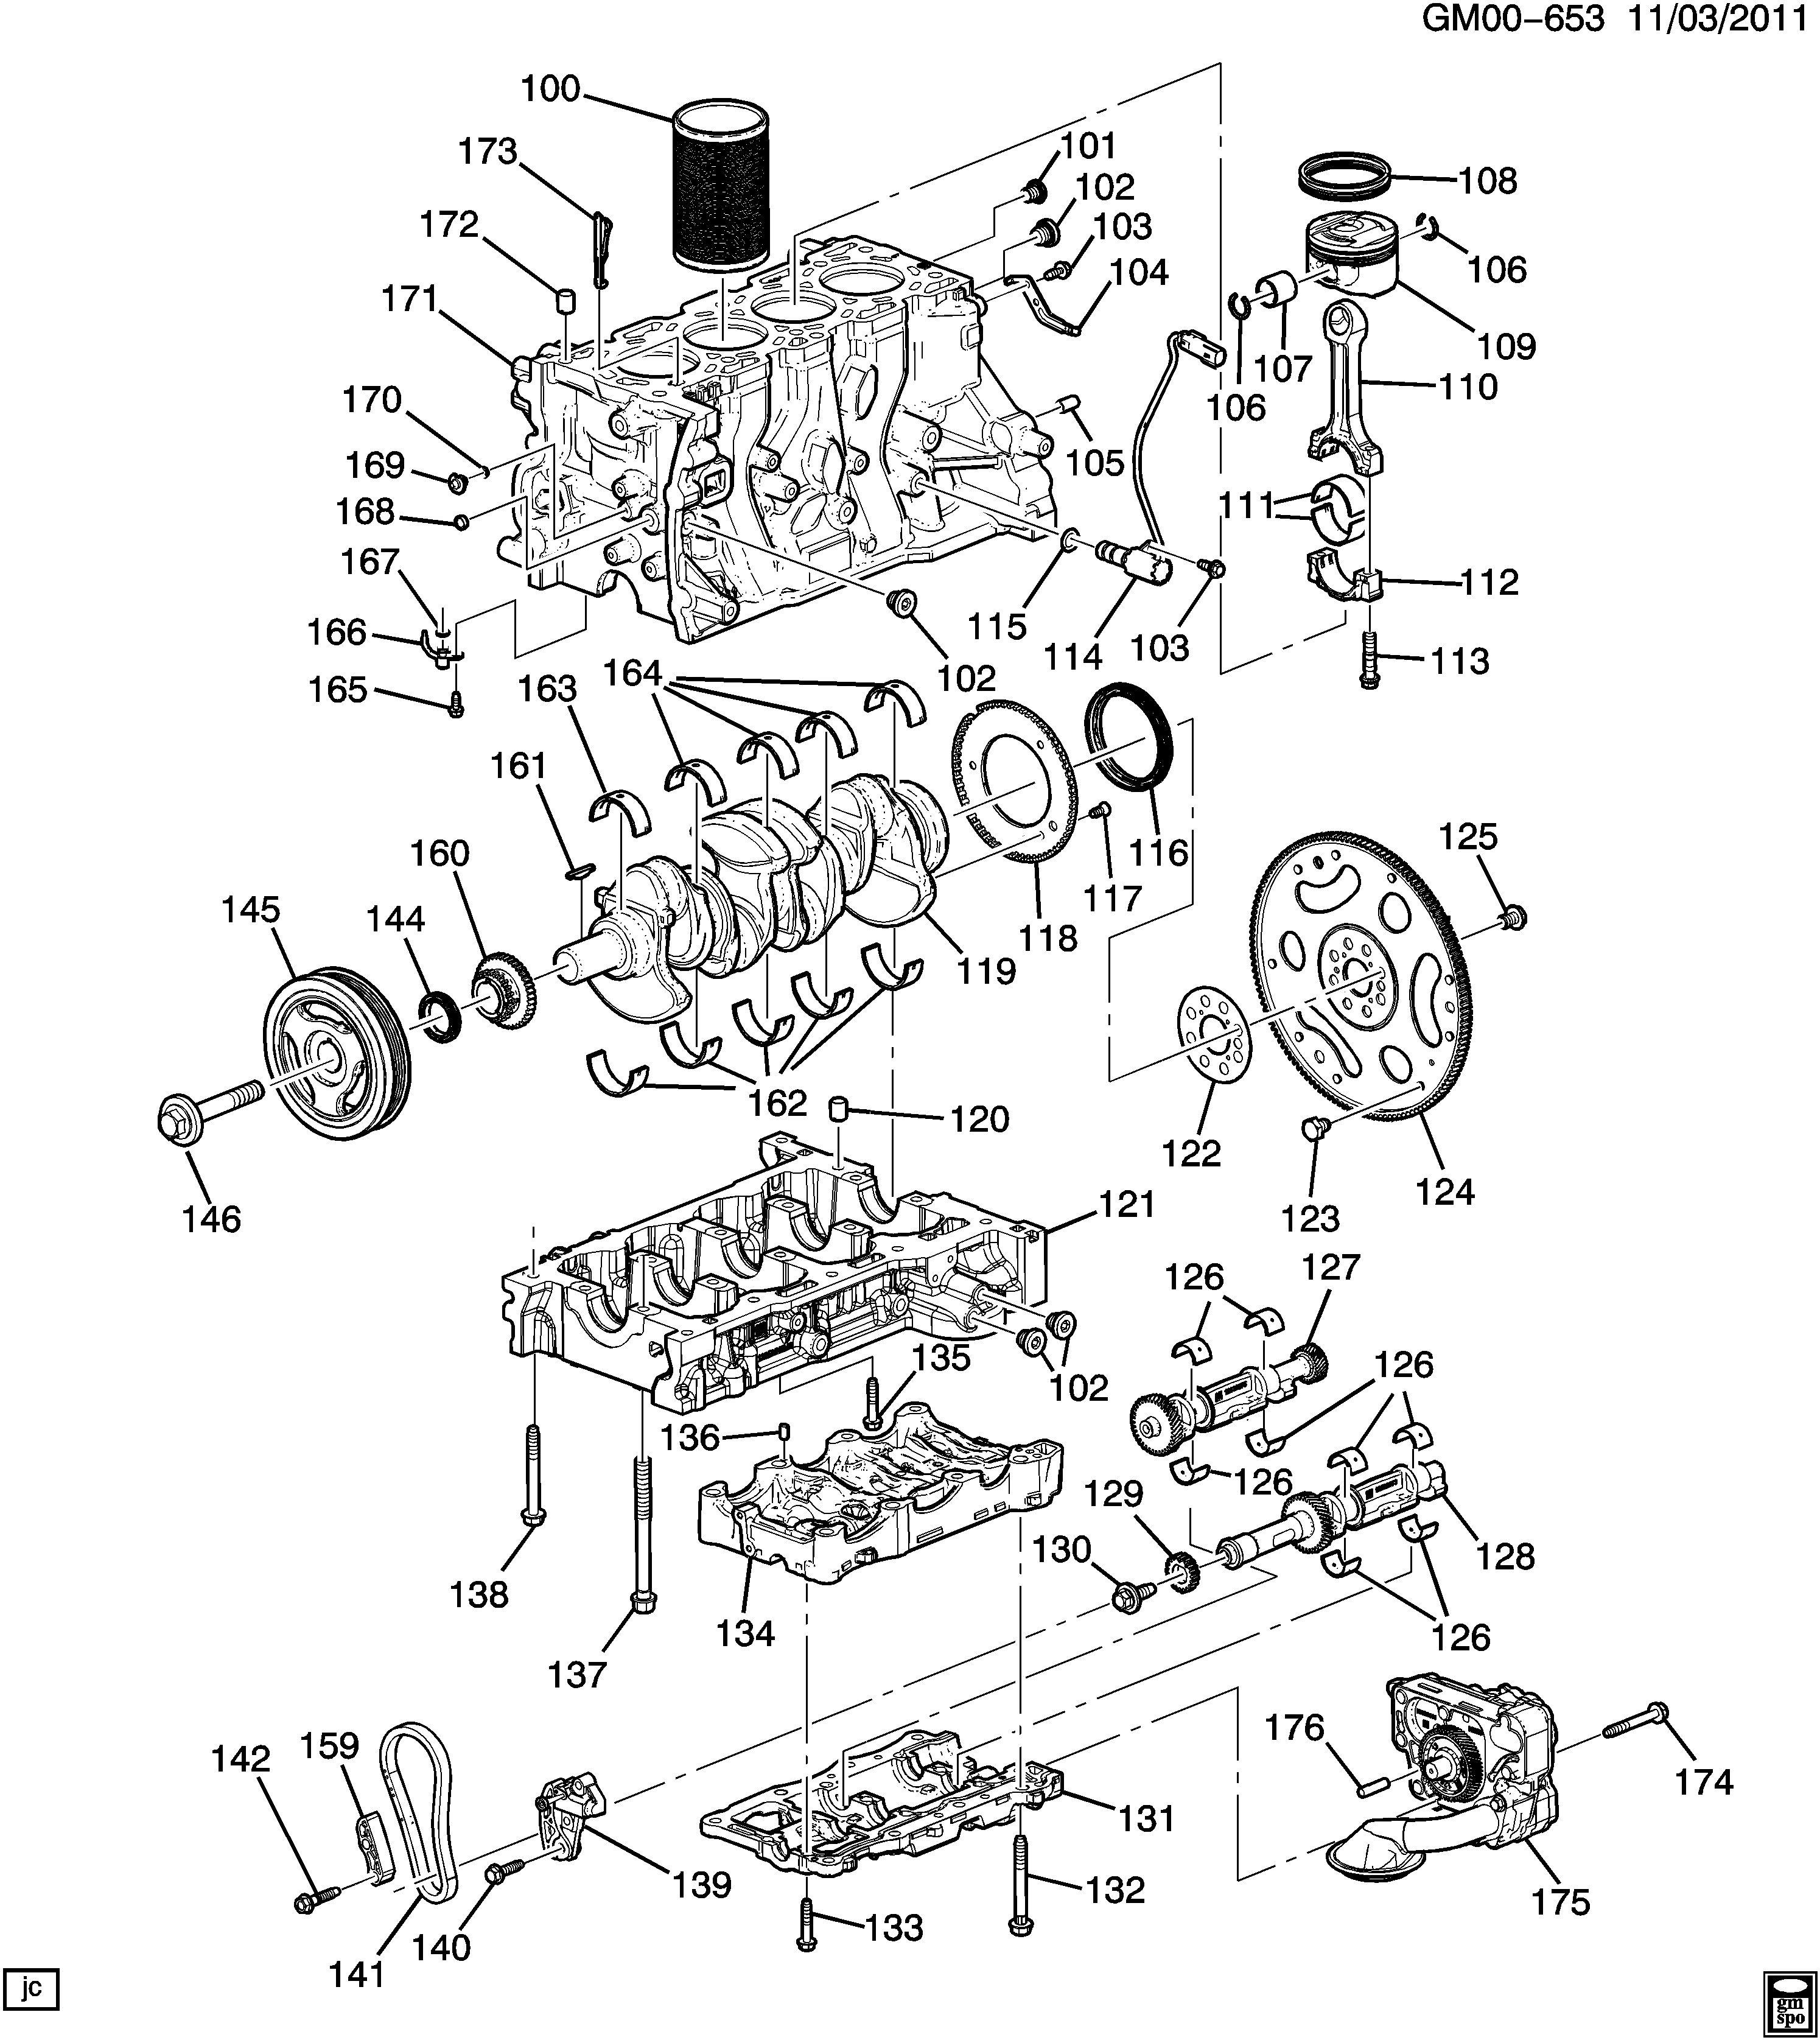 174142 I Got Four Codes Need Guidance as well 403183 Vacuum Diagram Clarification as well 506534 furthermore 166659 Sun Roof Help Please likewise Wire Harness 1998 Dodge Neon. on srt 4